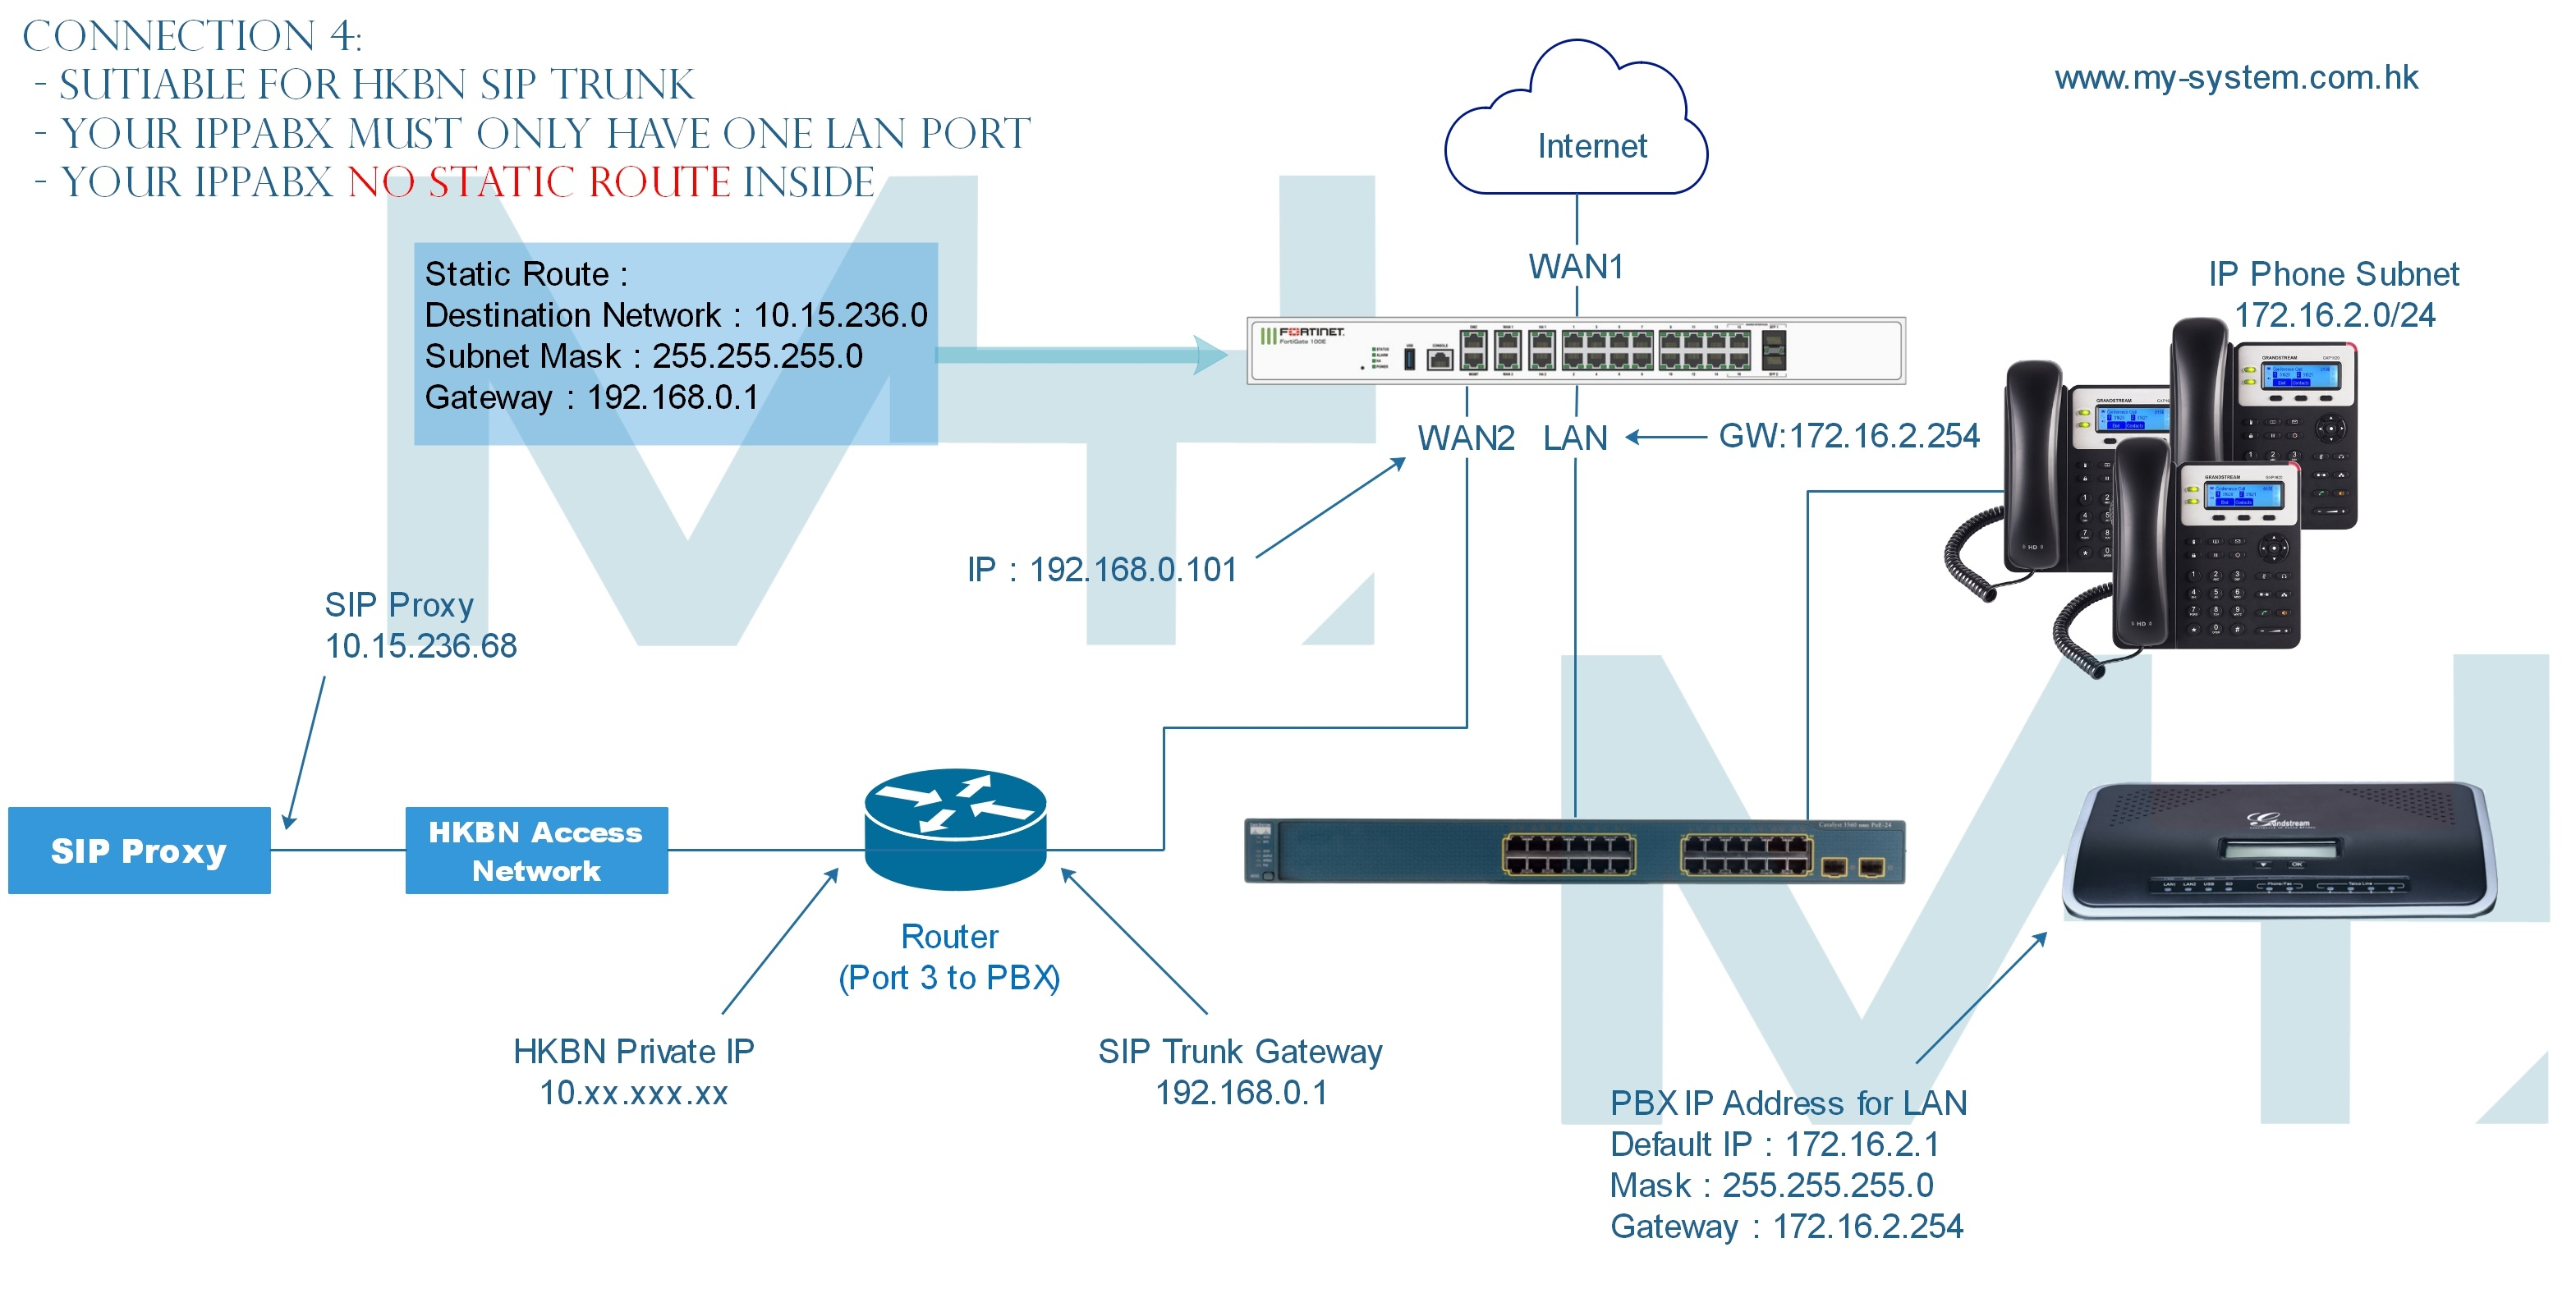 HKBN SIP Trunk Connection Flow/Guide - MY SYSTEM